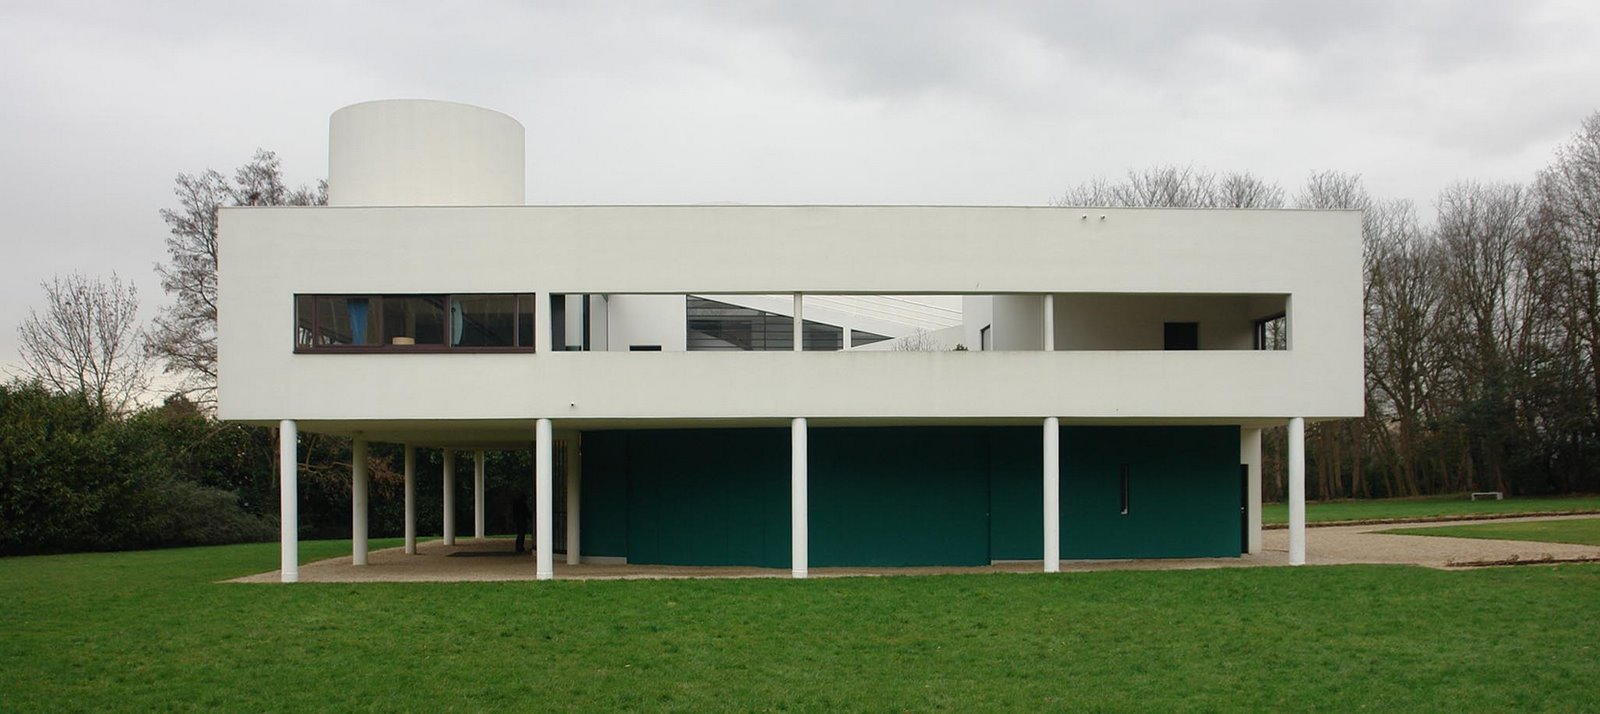 villa savoye influence modern architecture 2018-7-26 le corbusier – villa savoye | part 2, architecture continuing from part 1 the architecture of villa savoye in plan, the house is based on a precise square grid marked by 25 columns, while in elevation the grid becomes rectangularin late 1928, the horizontal grid, and by consequence the whole building size, was scaled down from 5 to 475 meters on a request by the client worried (not.